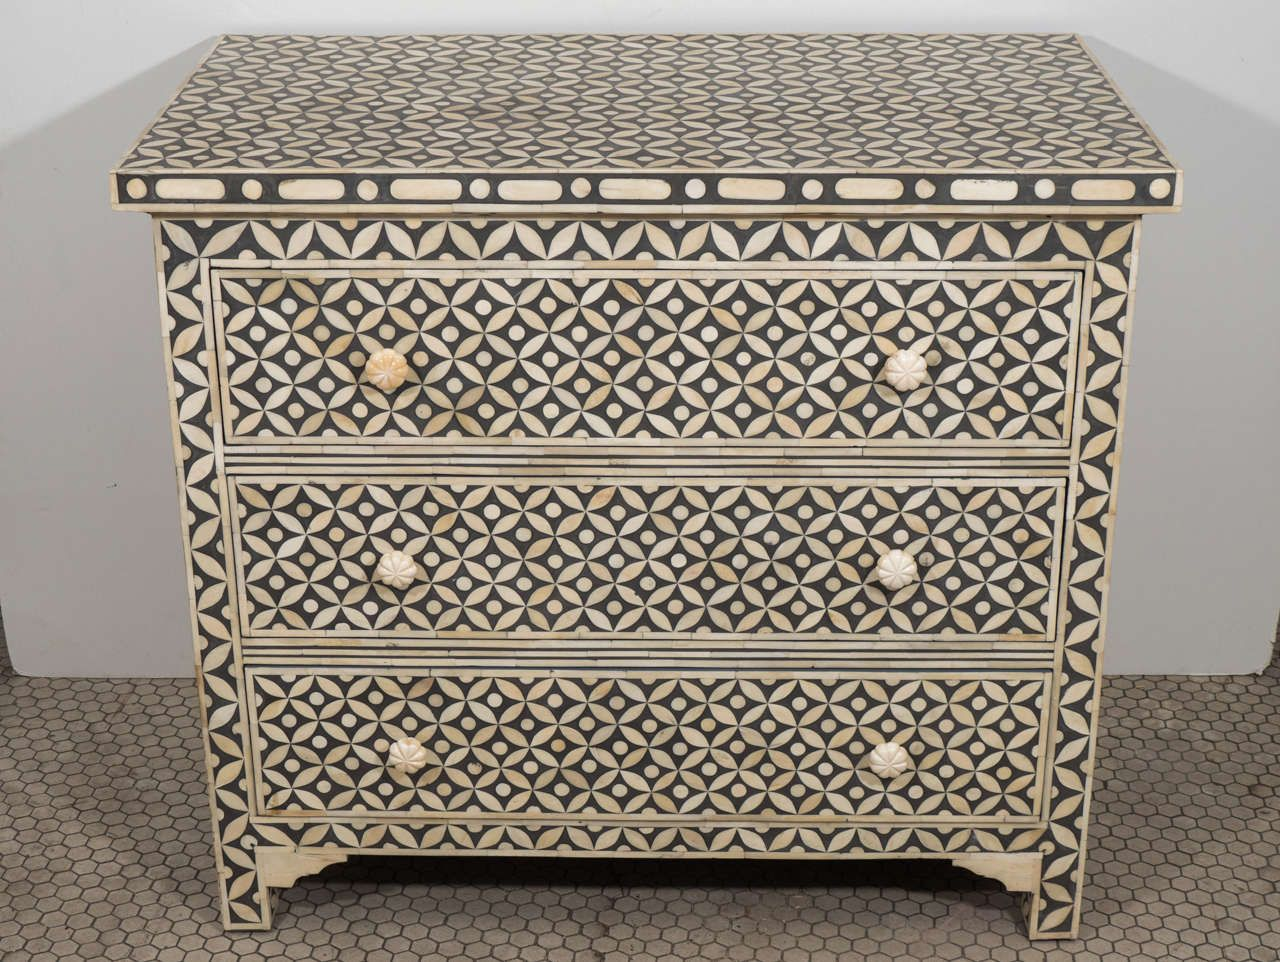 Indian Geometric, Inlaid Bone Bureau | From a unique collection of antique and modern dressers at http://www.1stdibs.com/furniture/storage-case-pieces/dressers/